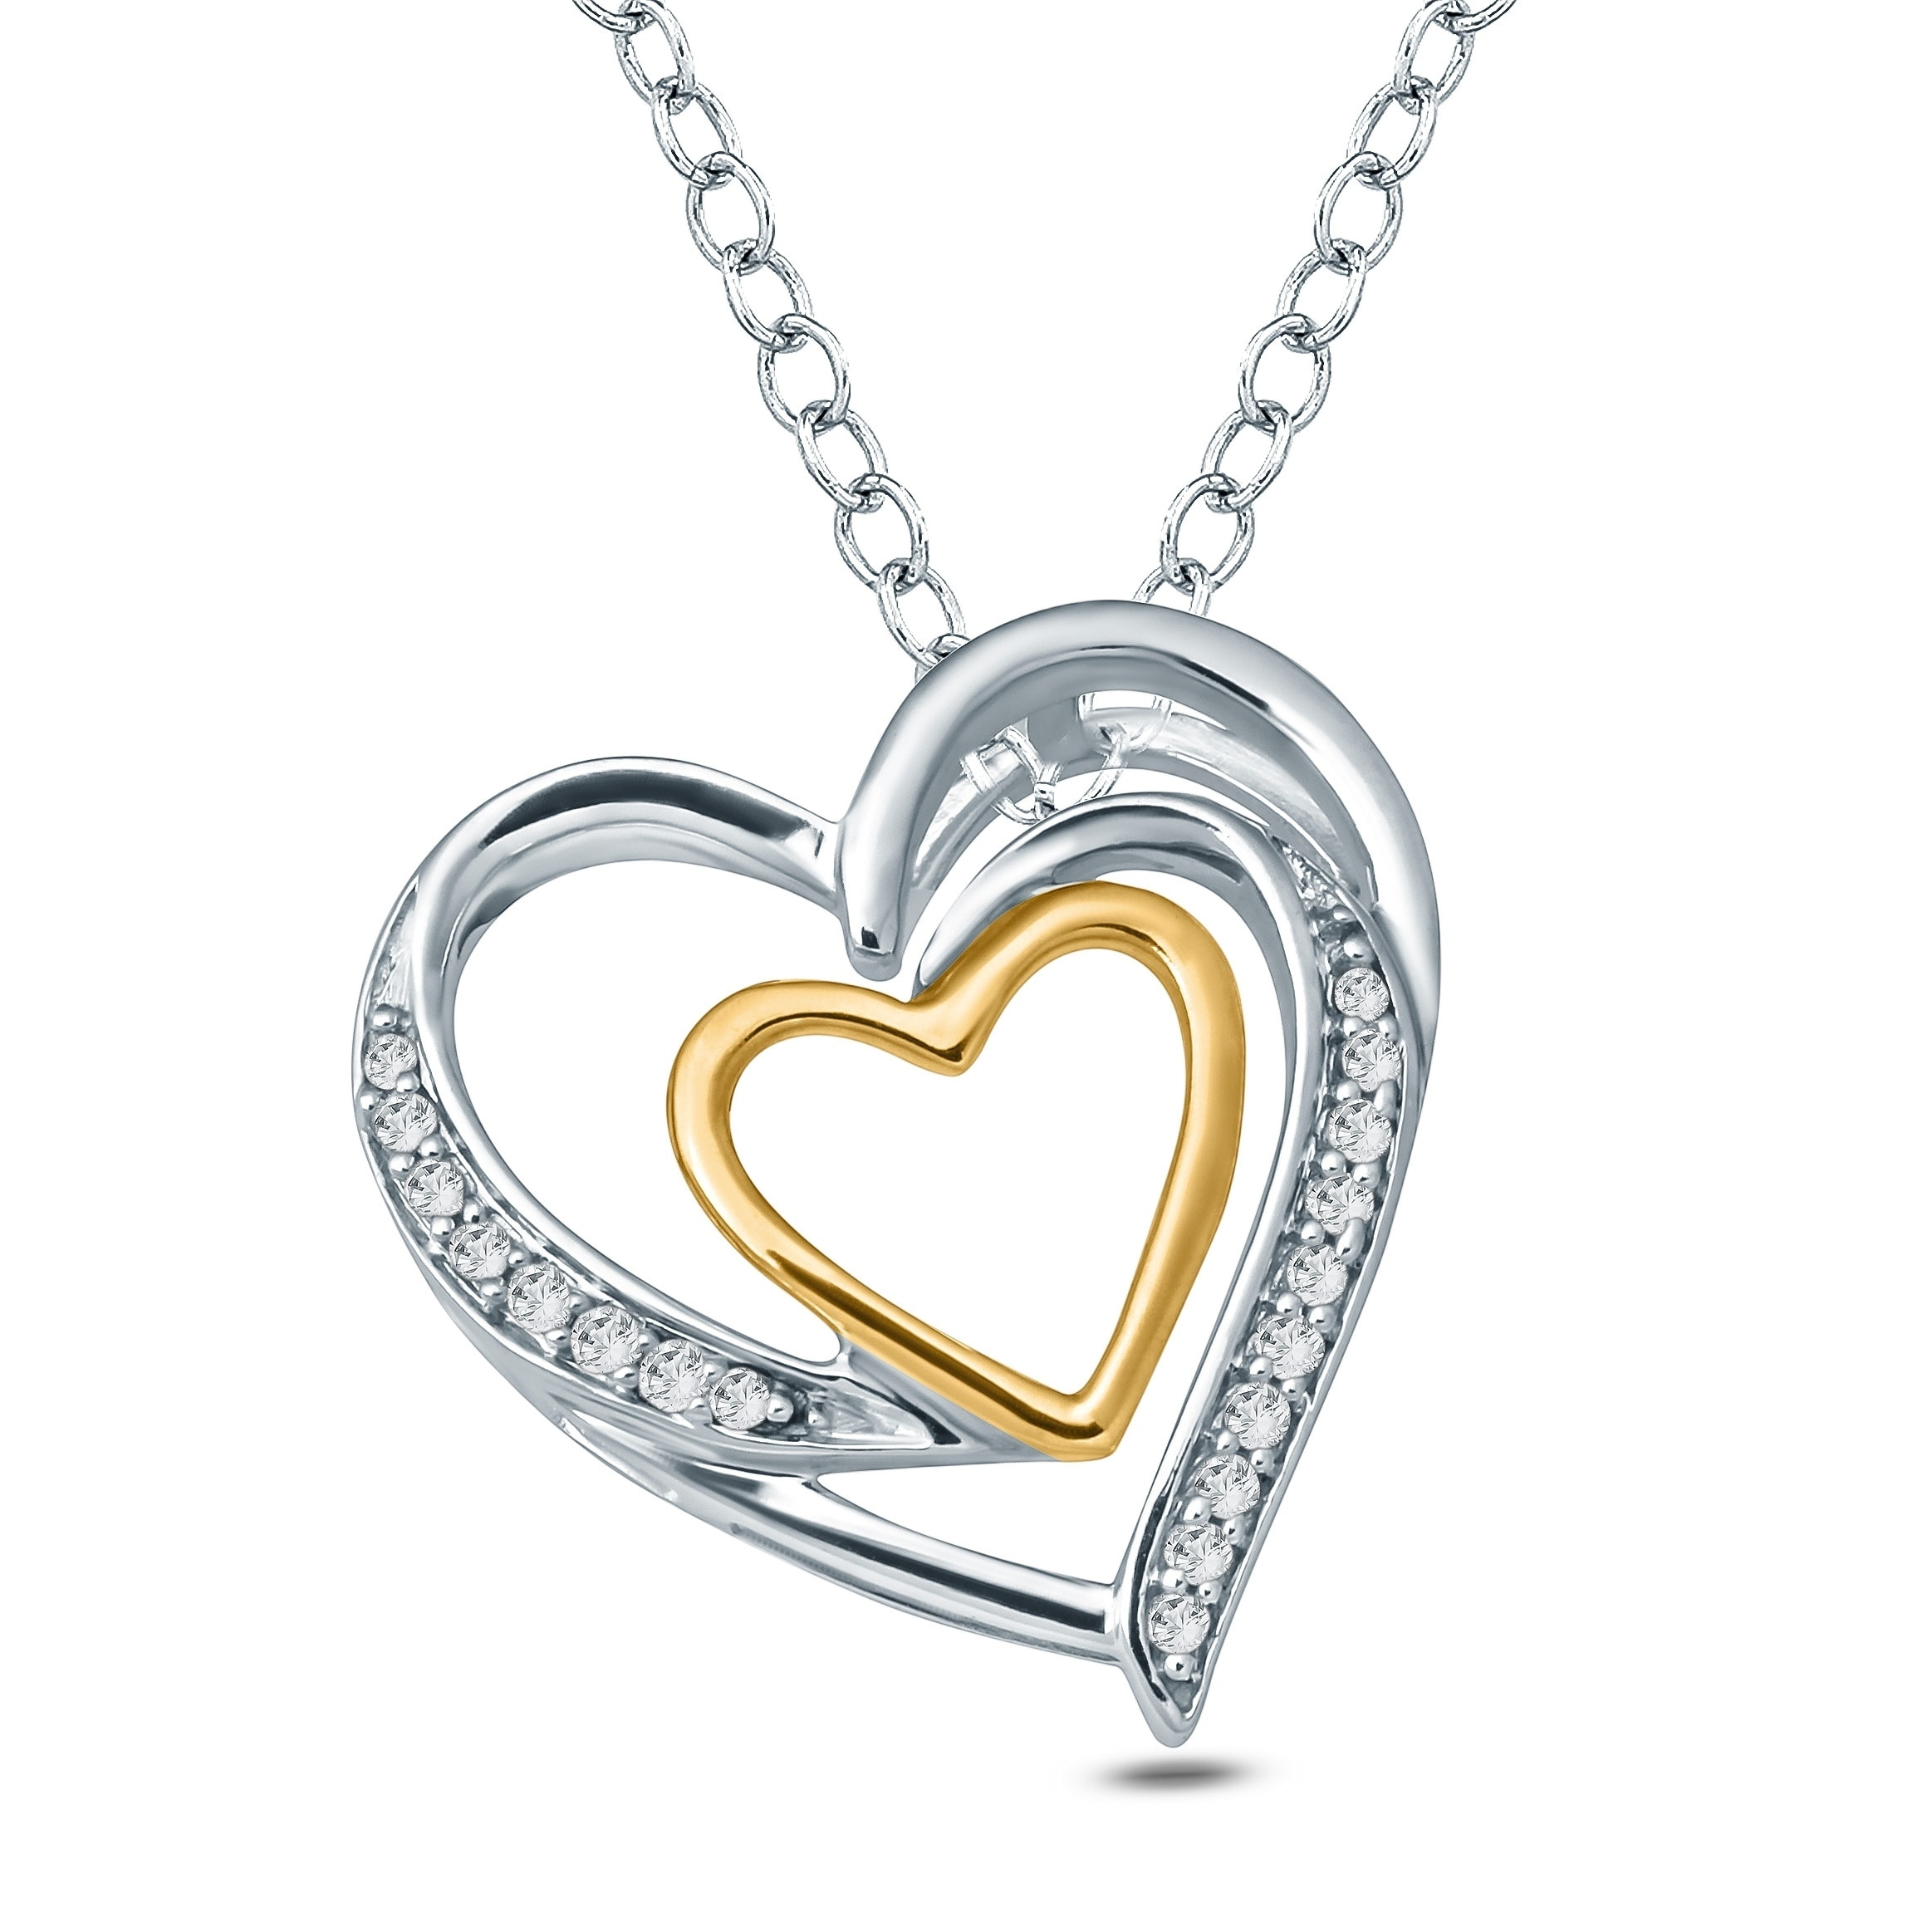 50f6d5fe6f7be6 Cali Trove 1/20 Ct Round Diamond Accent Double Heart Pendant In Sterling  Silver & 10K Yellow Gold. - White